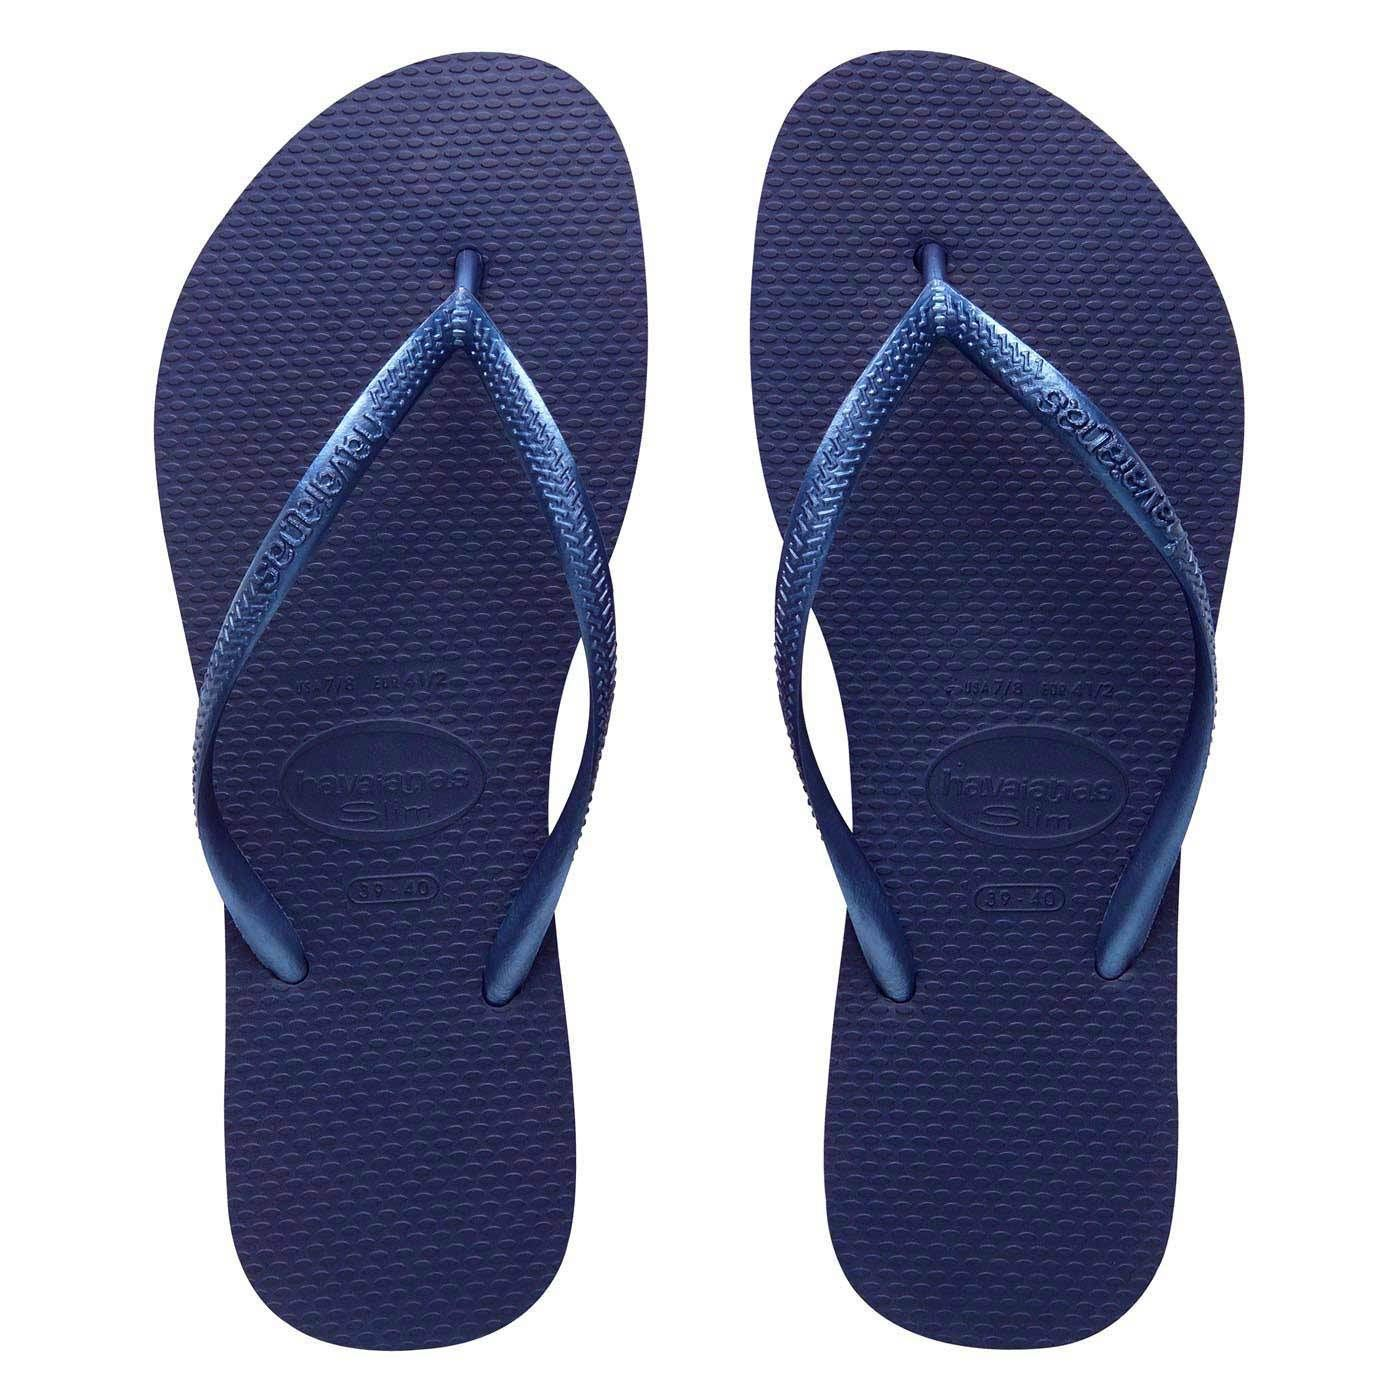 81d7a05a65813d Havaianas Slim Brazil Women s Flip Flops Blue Brand new All sizes